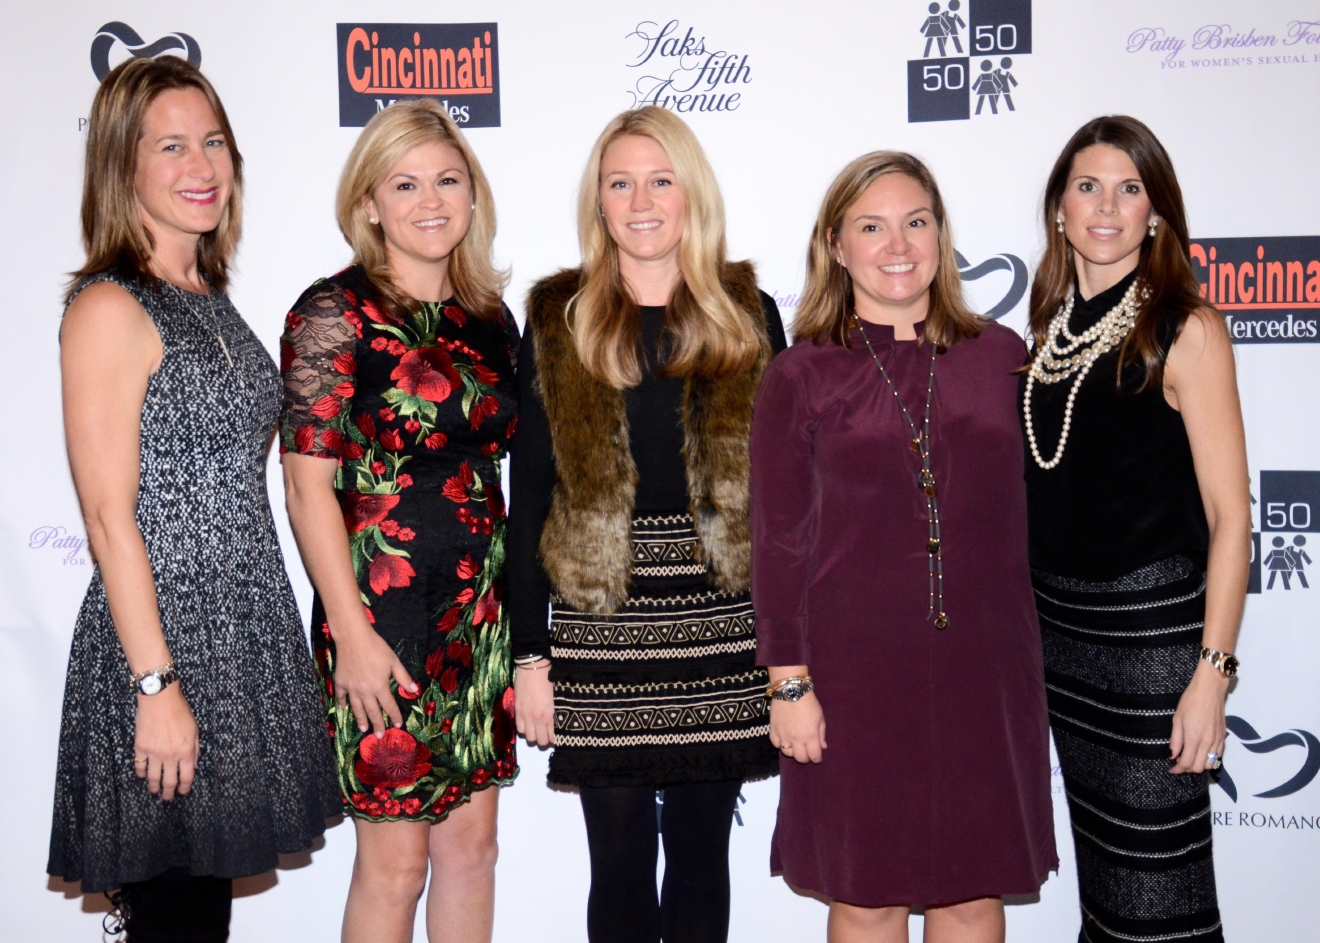 Event co-chairs: Jennifer Stuhlreyer, Jennifer Byer, Jen Bahl, Marissa Miller, and Macy Hansen / Image: Bob White